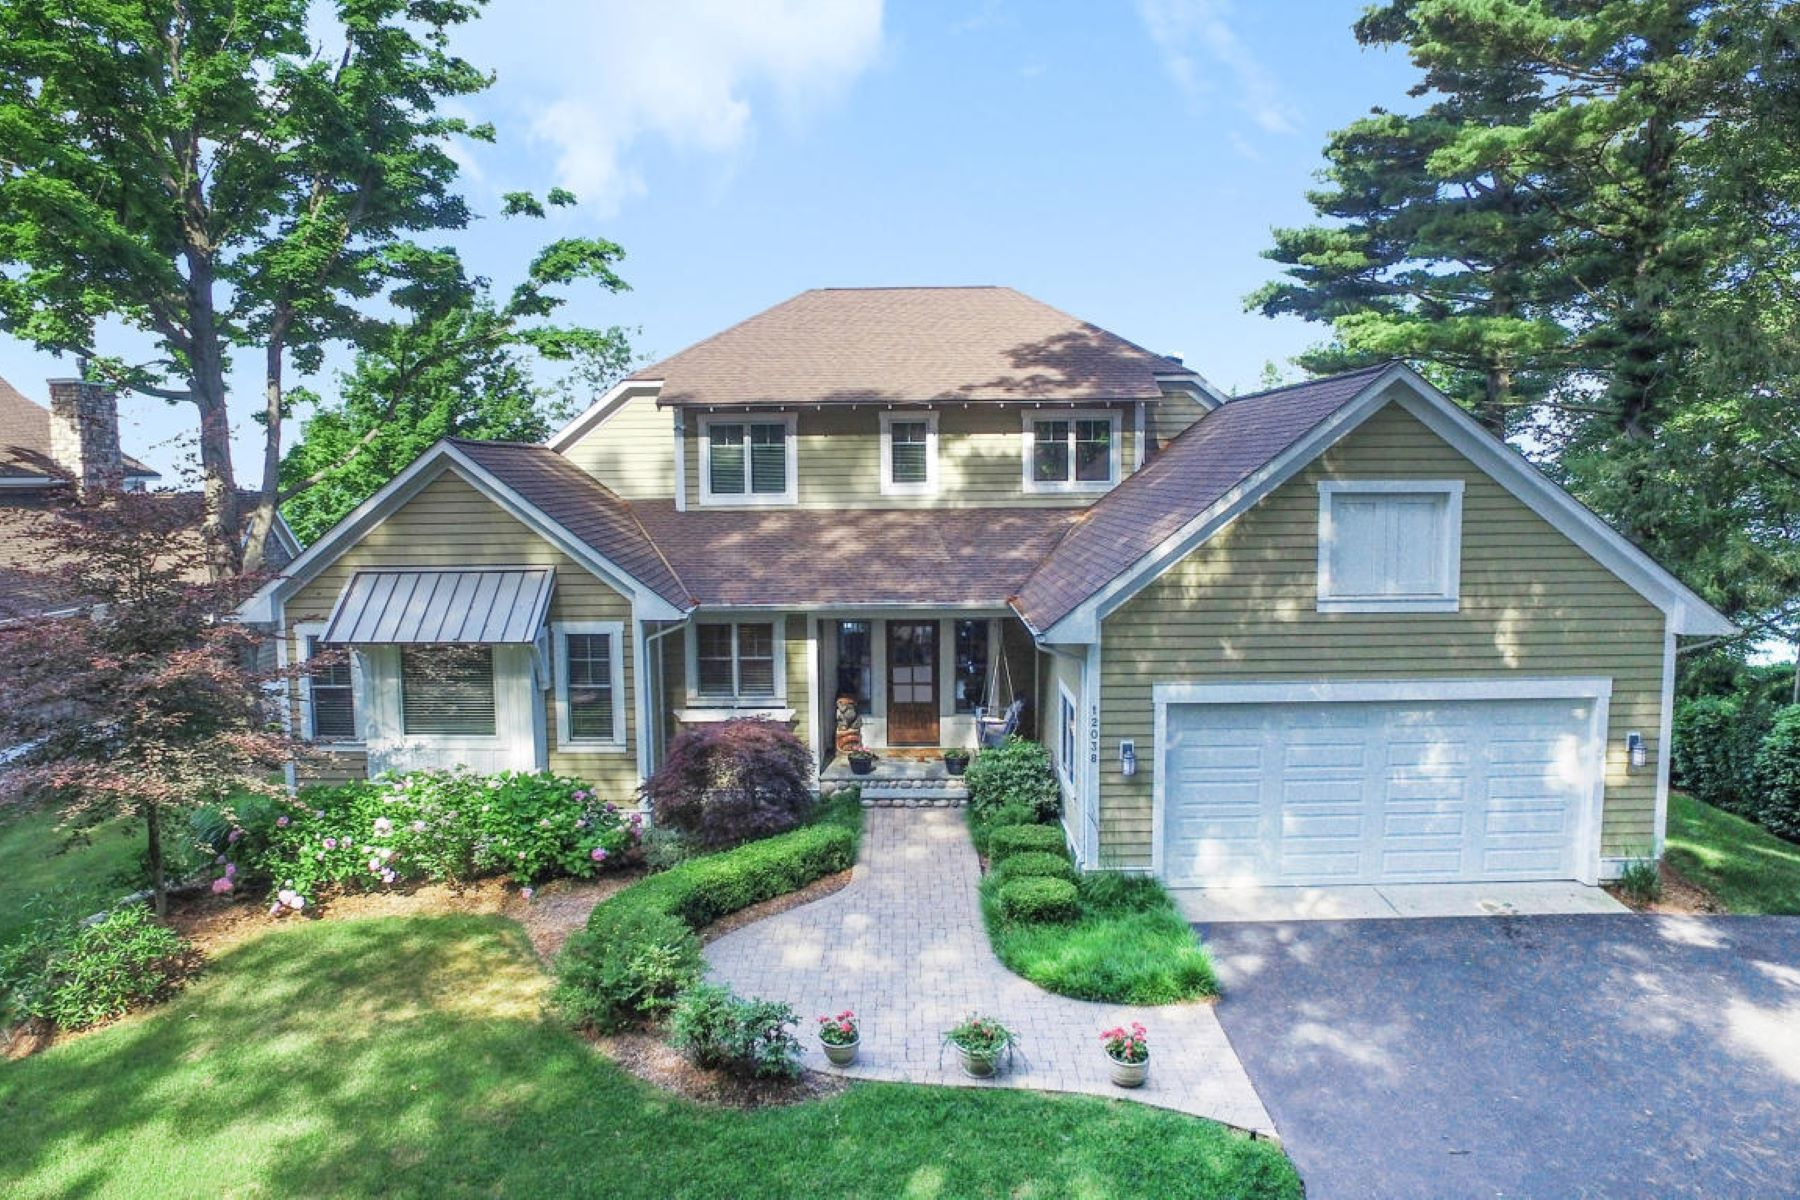 Single Family Homes for Sale at Incomparable South Haven Beach Home 12038 Lakebridge Lane South Haven, Michigan 49090 United States